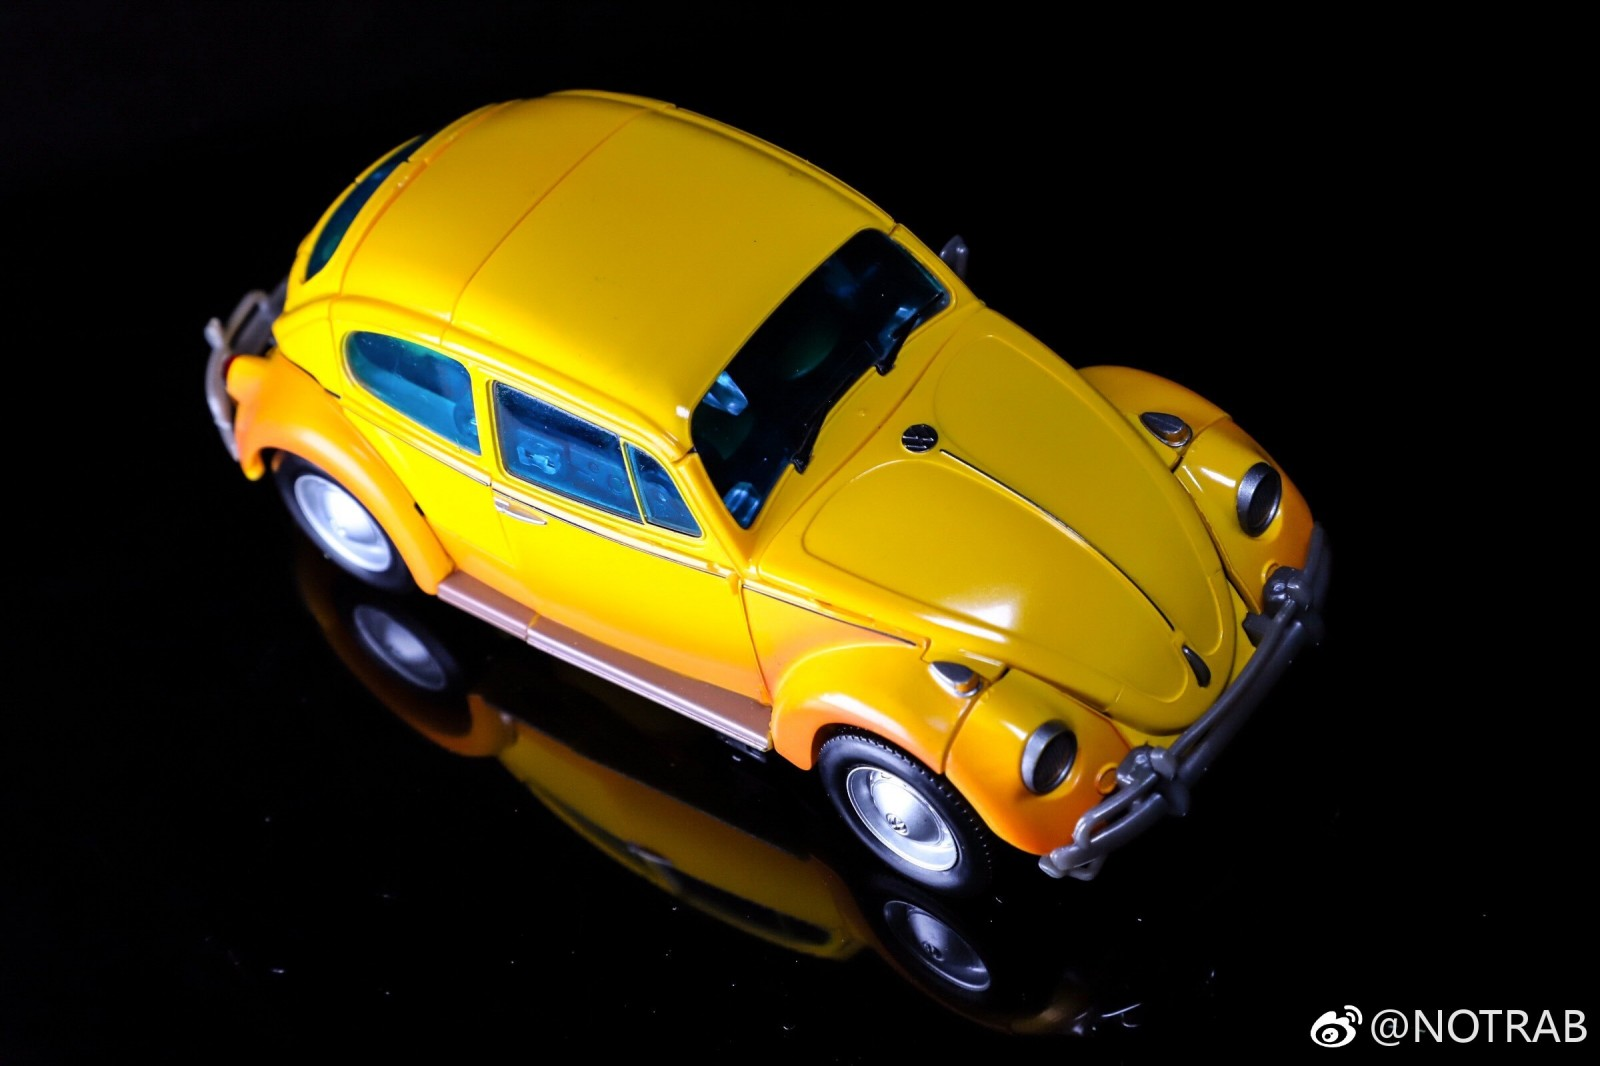 Transformers News: New Stock Images of Transformers Movie Masterpiece MPM-7 Volkswagen Bumblebee